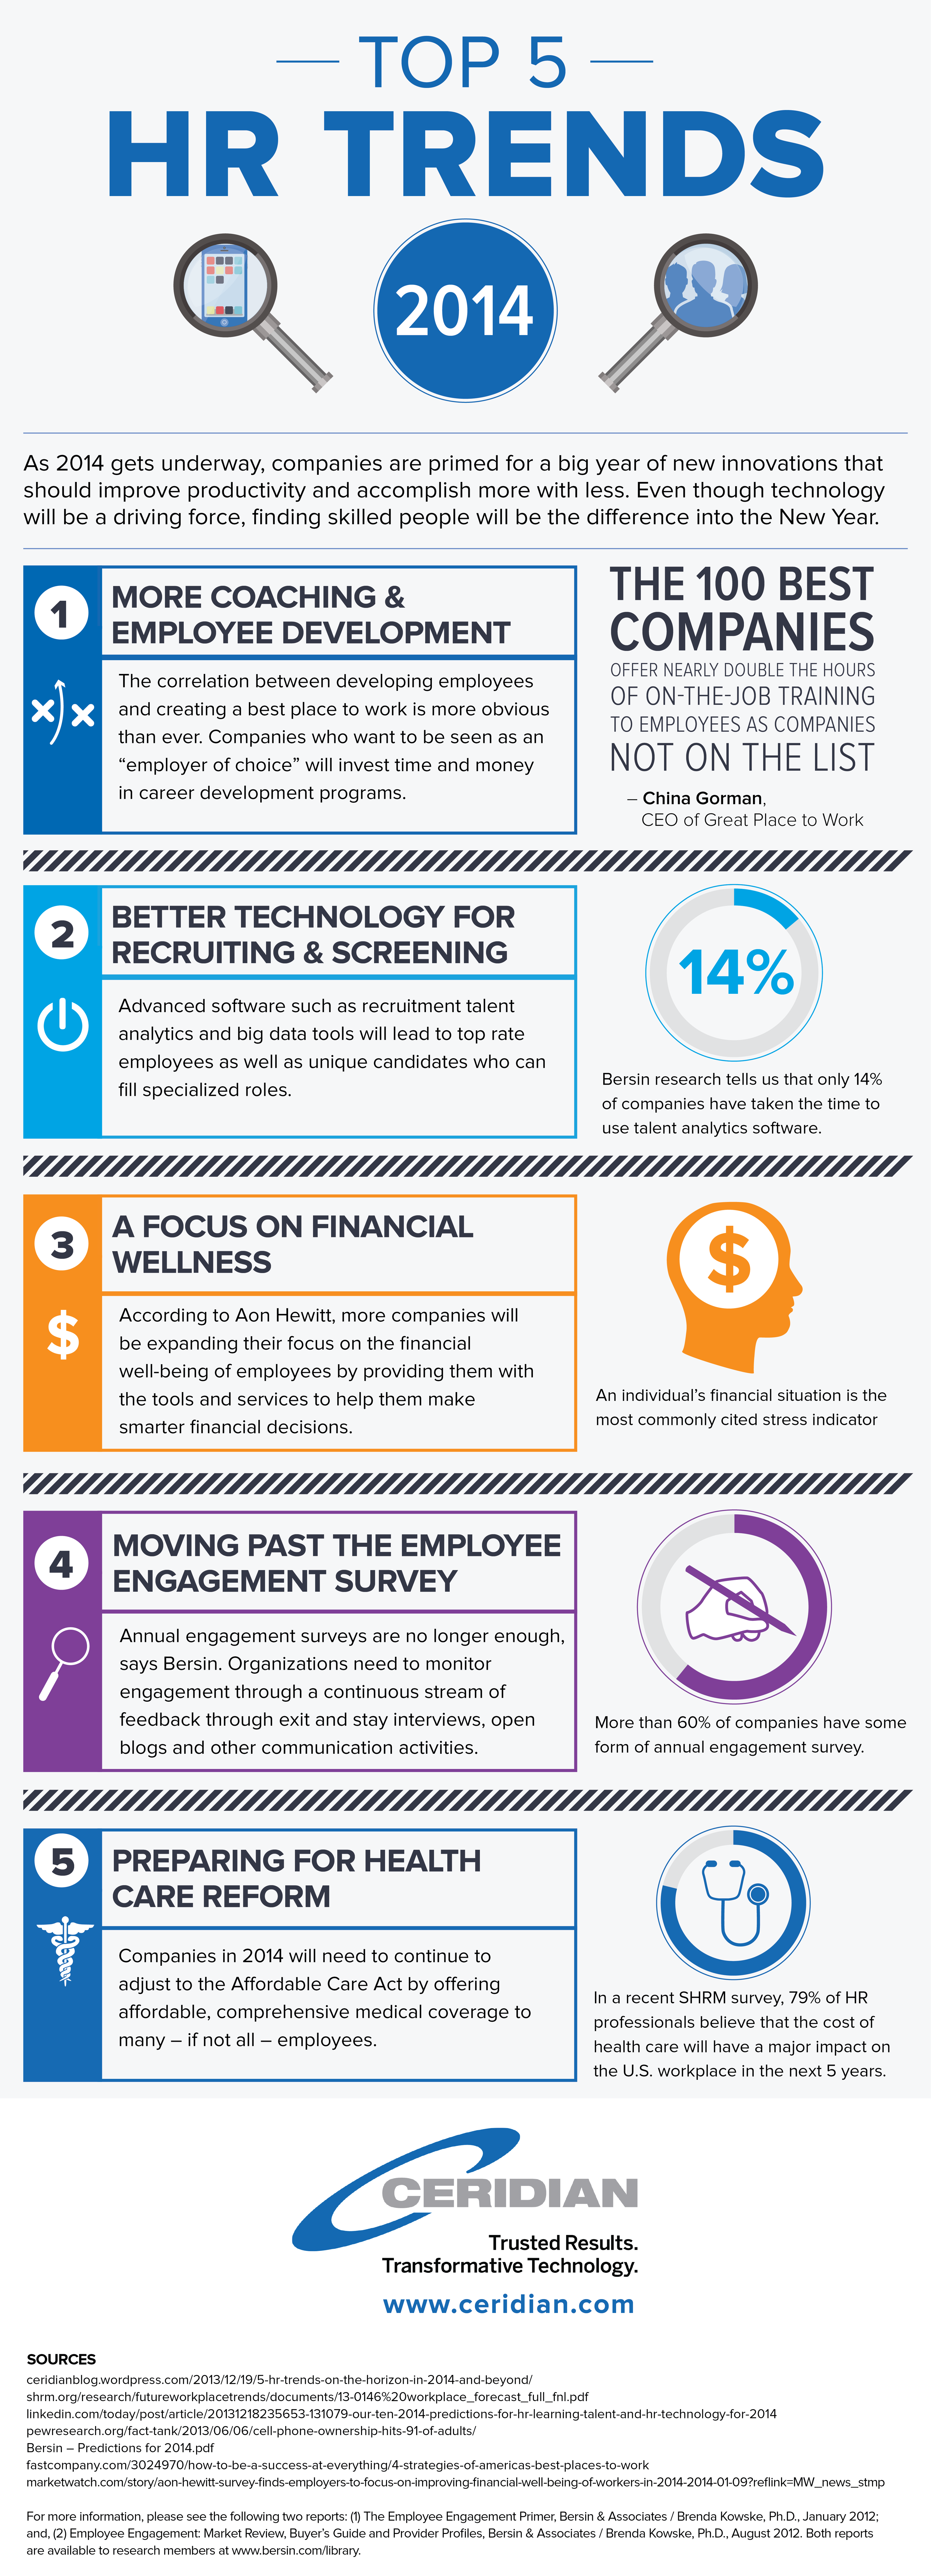 Infographic 5 Trends In Hr For 2014 And Beyond A Top 10 Blog Post In 2014 Human Resource Management Human Resources Human Resource Development